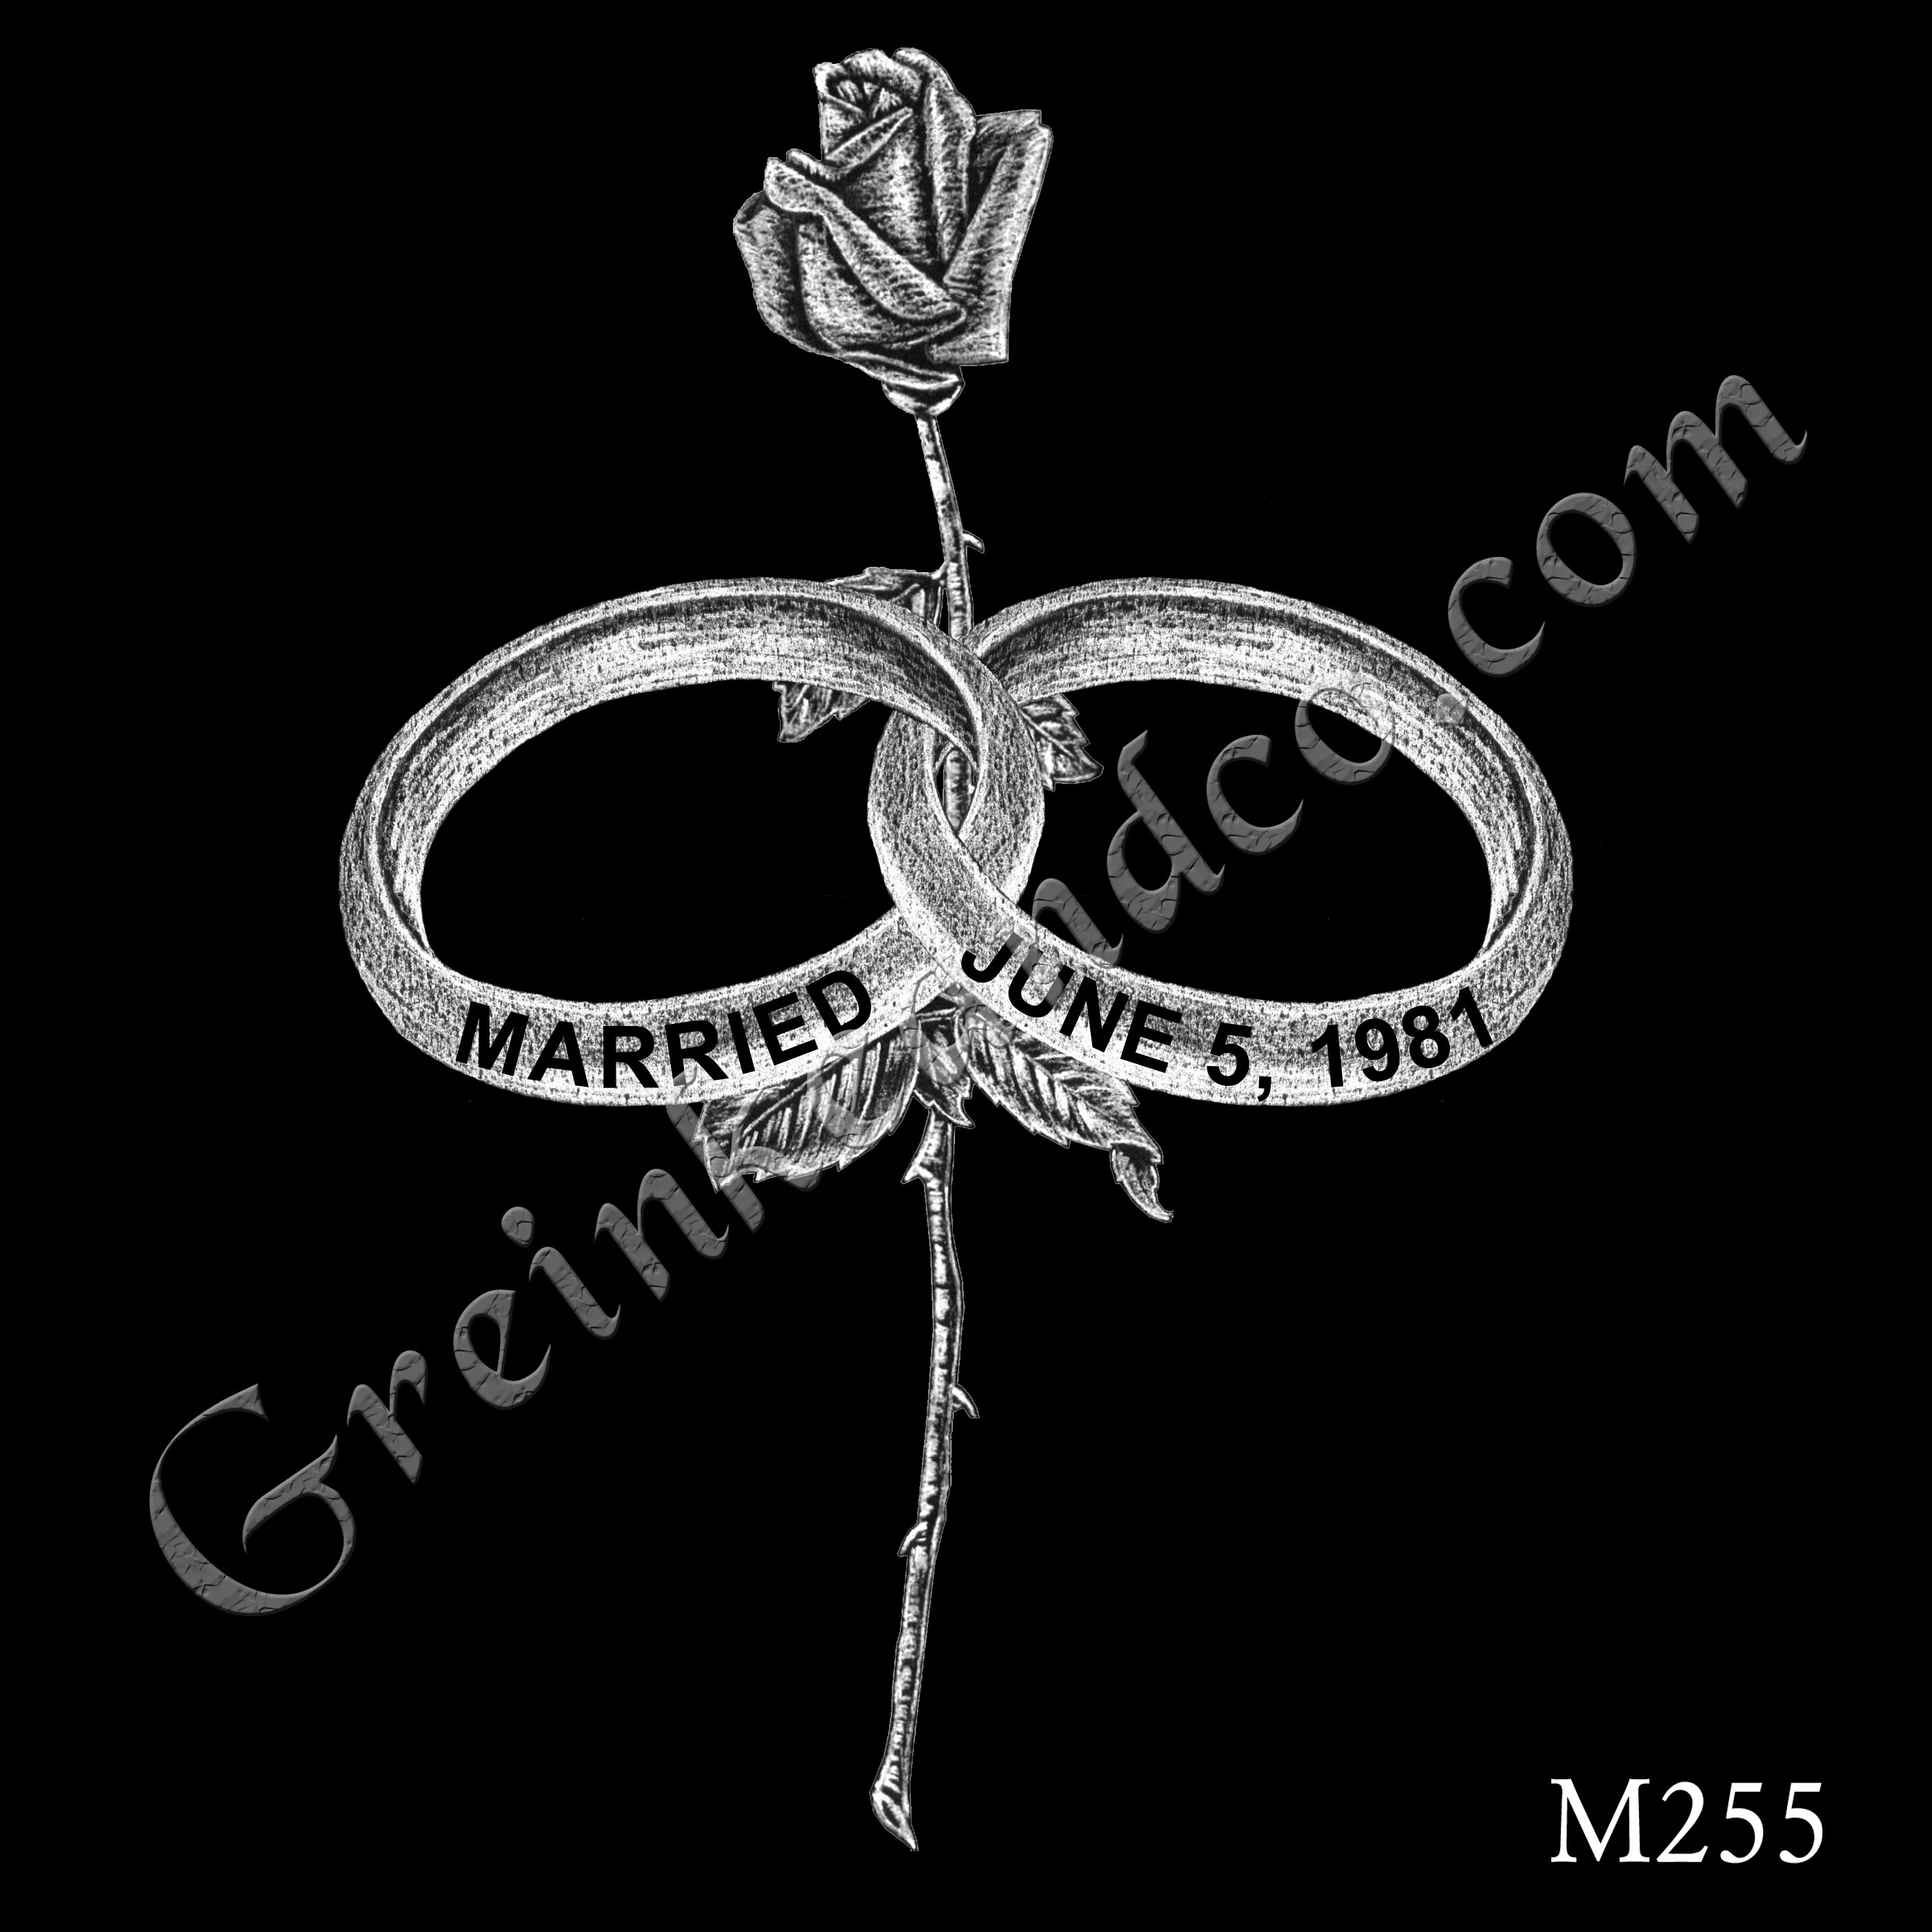 Interlocking horizontal wedding bands with dates on them; single long stem rose stands vertically between them